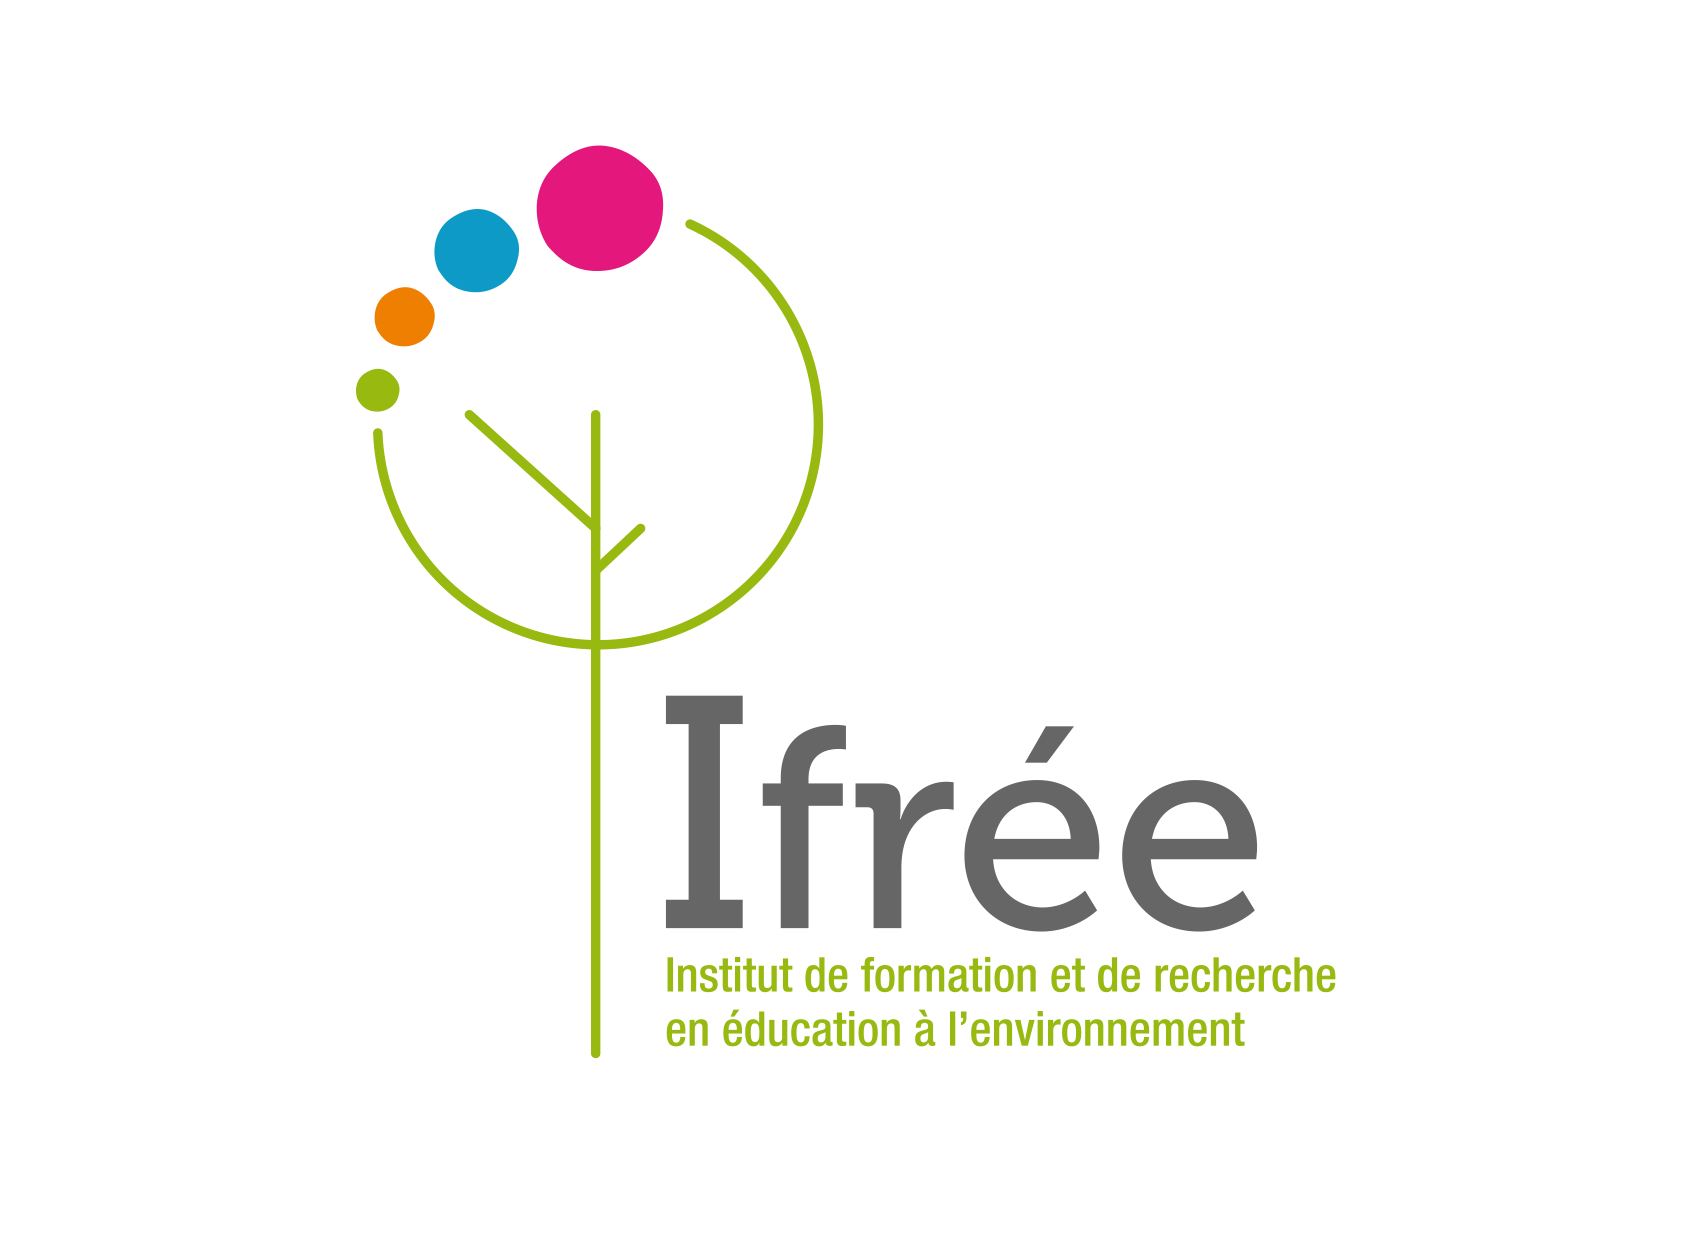 logo IFREE